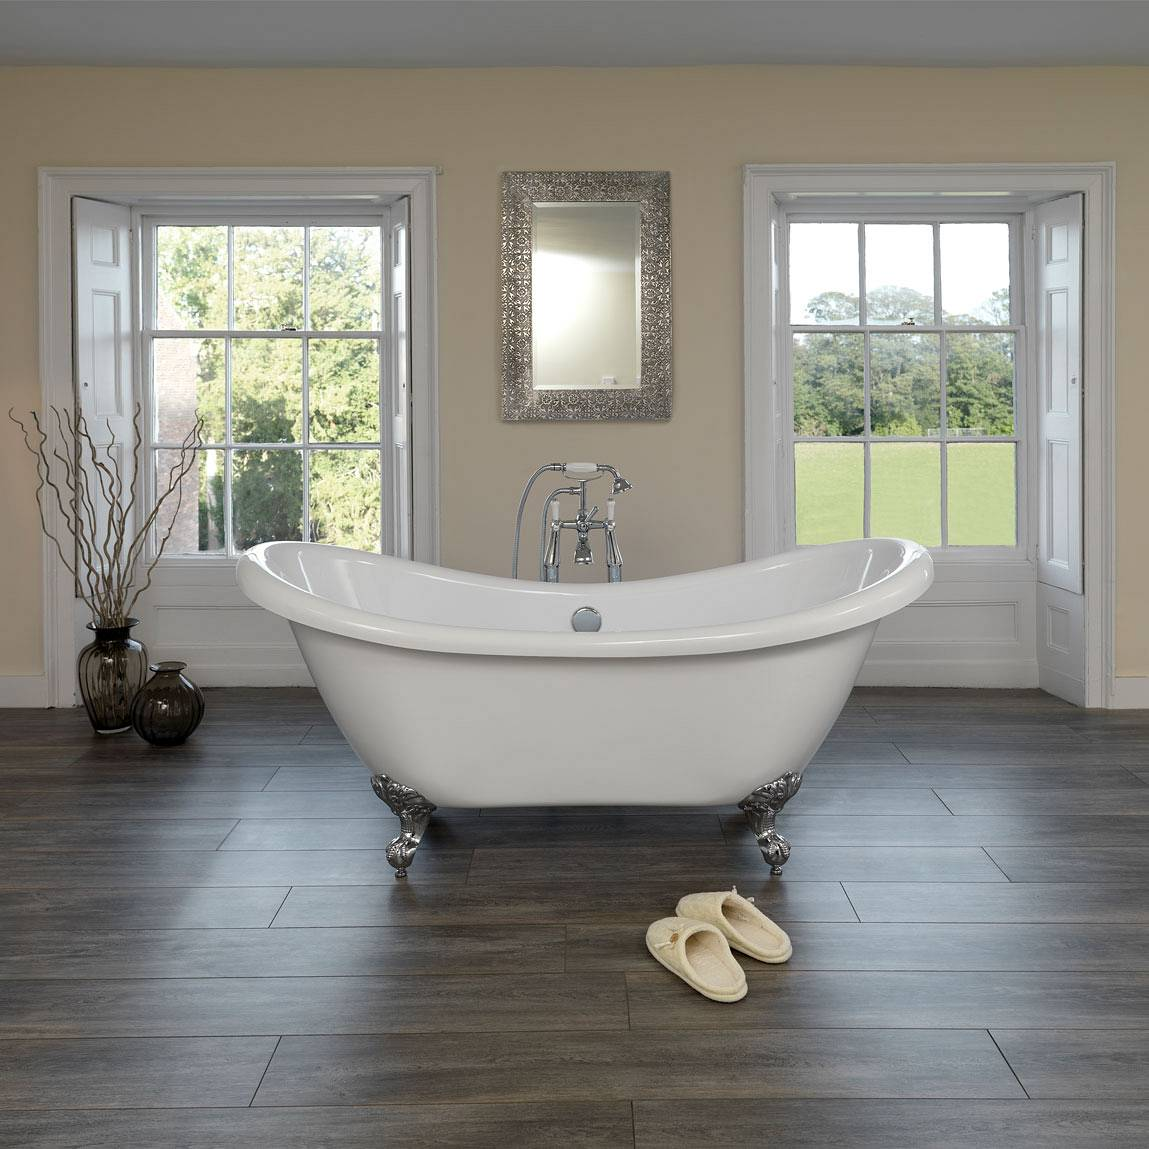 Top two roll top baths for a transitional bathroom design fresh design blog - Bathroom design blogs ...